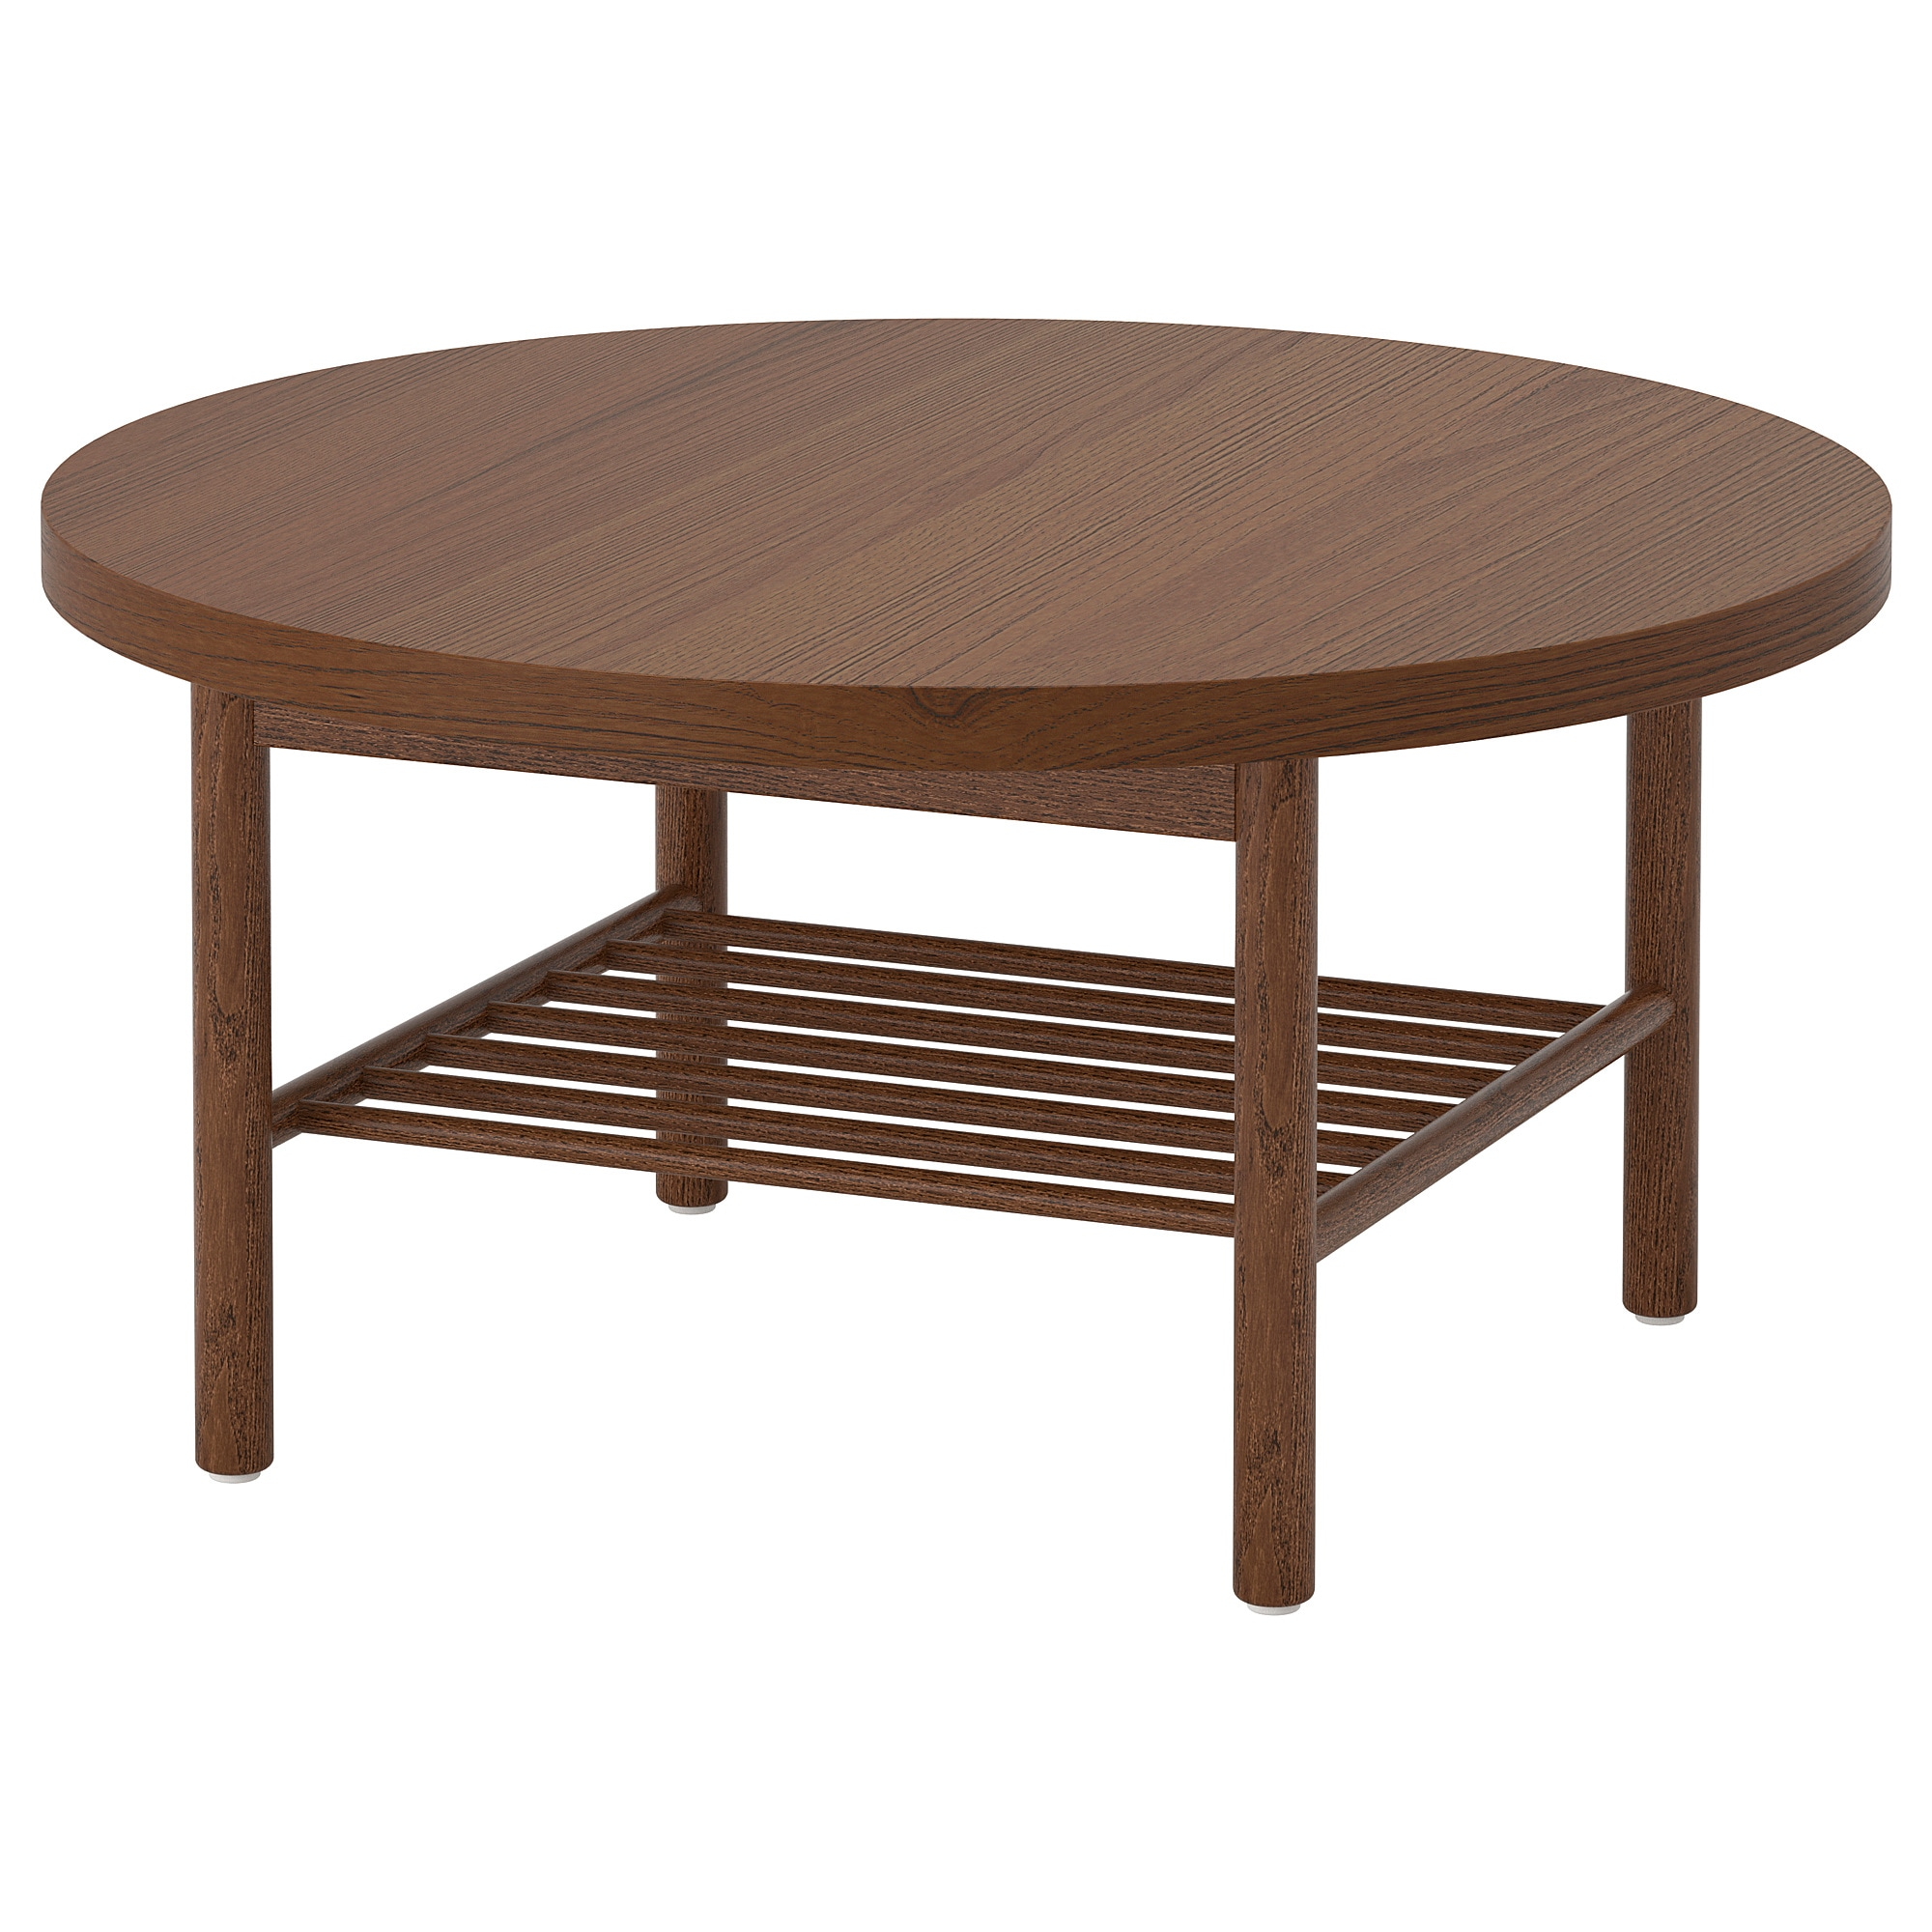 Listerby Coffee Table Brown 35 3 8 90 Cm Ikea Brown Coffee Table Coffee Table White Coffee Table [ 2000 x 2000 Pixel ]